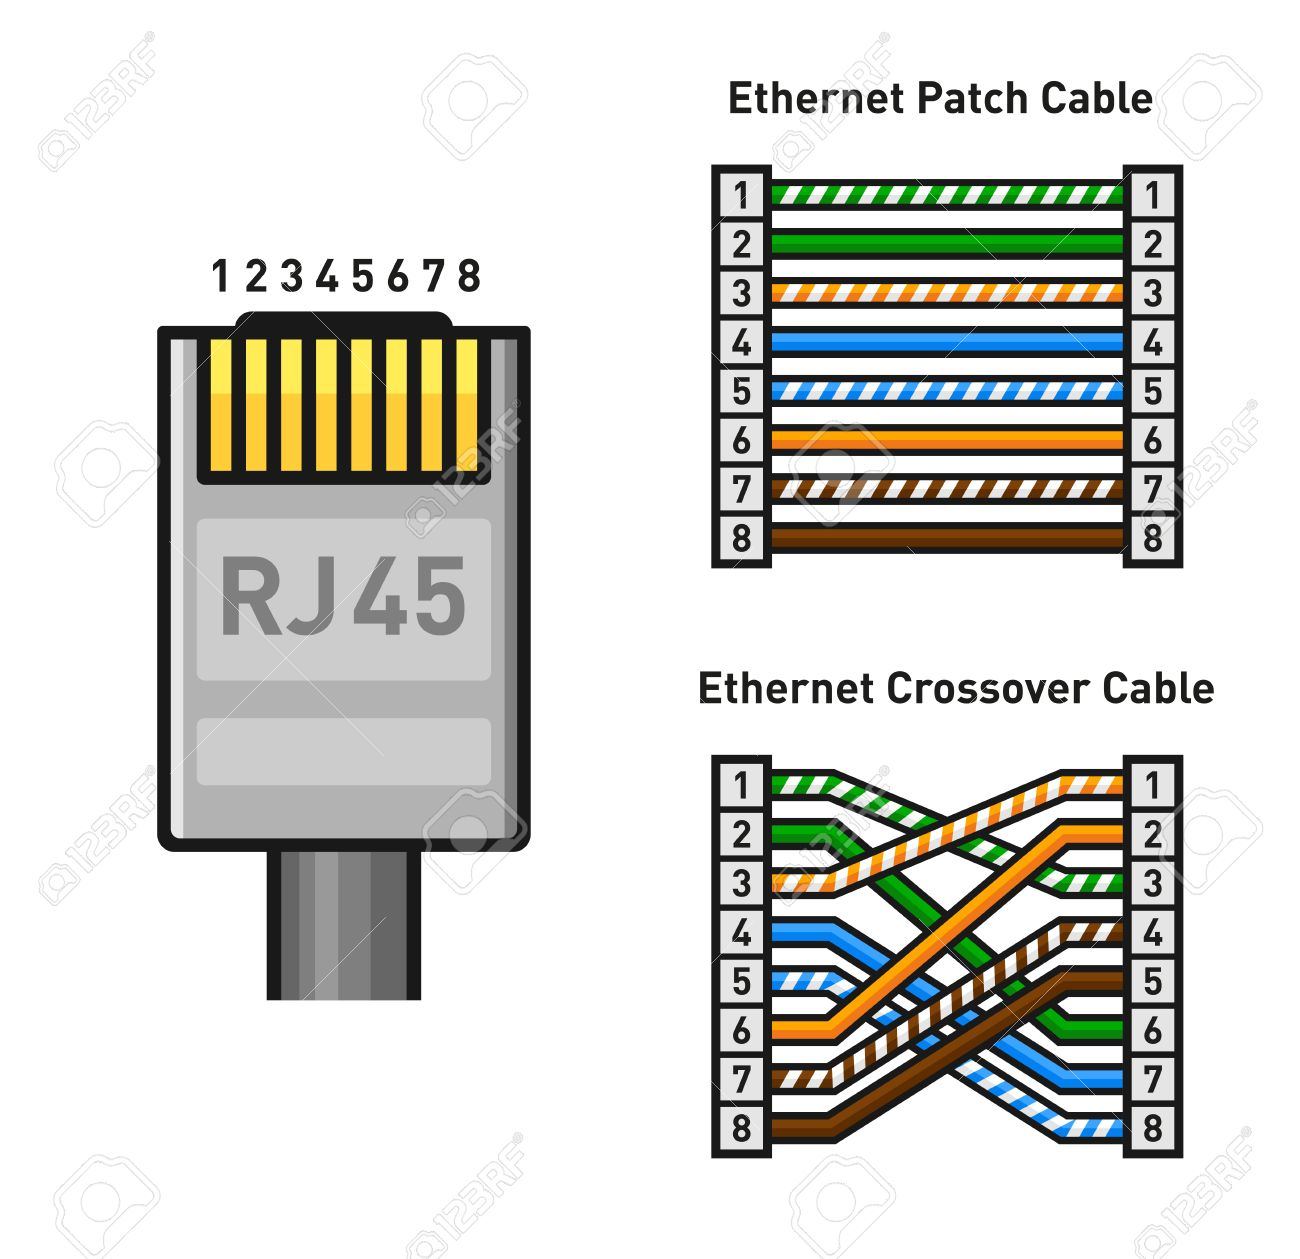 Rj 48c T1 Wiring Diagram Electrical 48 Jack Free Download Diagrams Schematics Pinout